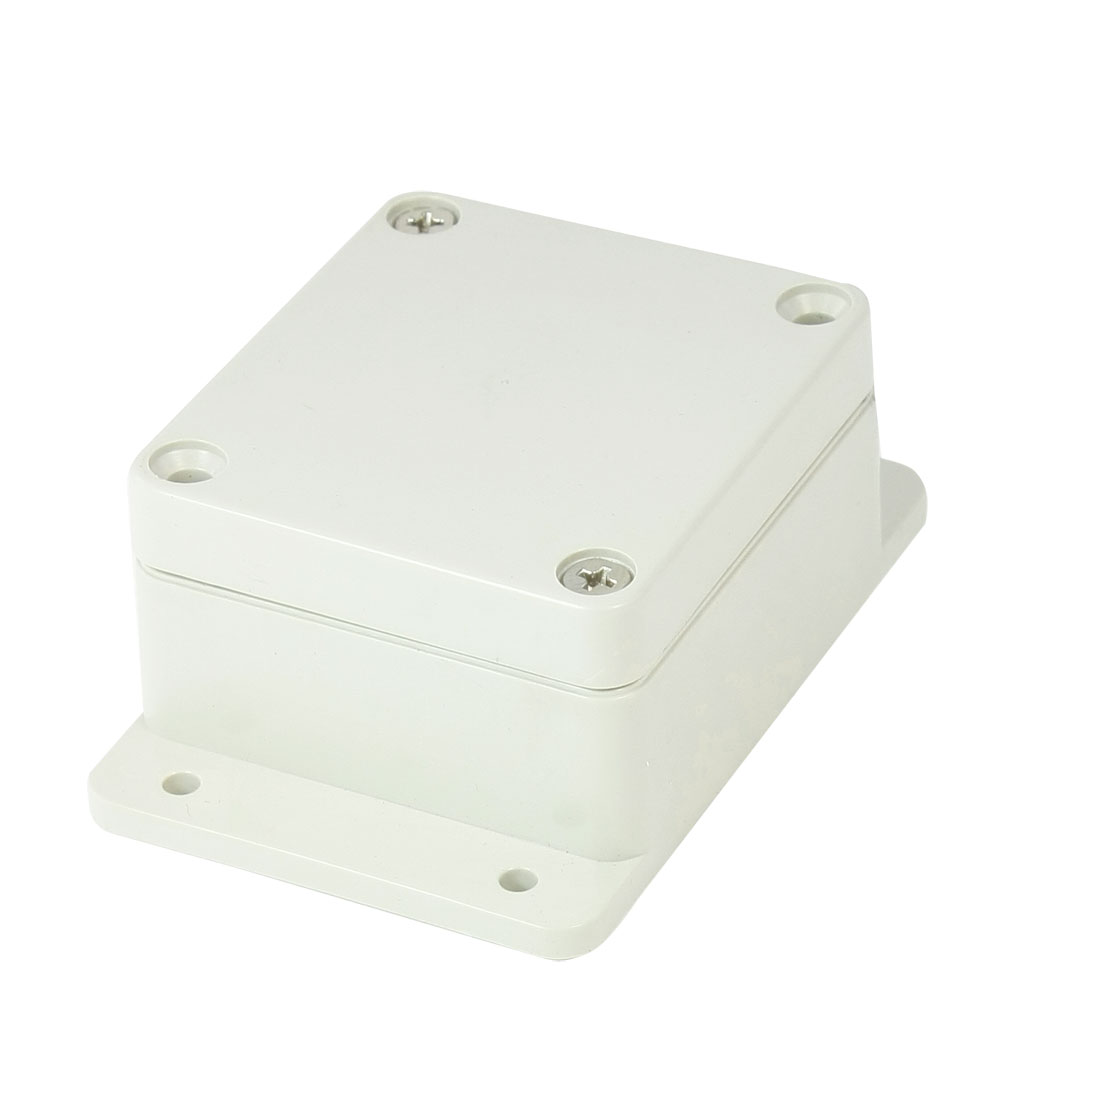 64mm x 58mm x 34mm Waterproof Plastic Enclosure Case DIY Junction Box